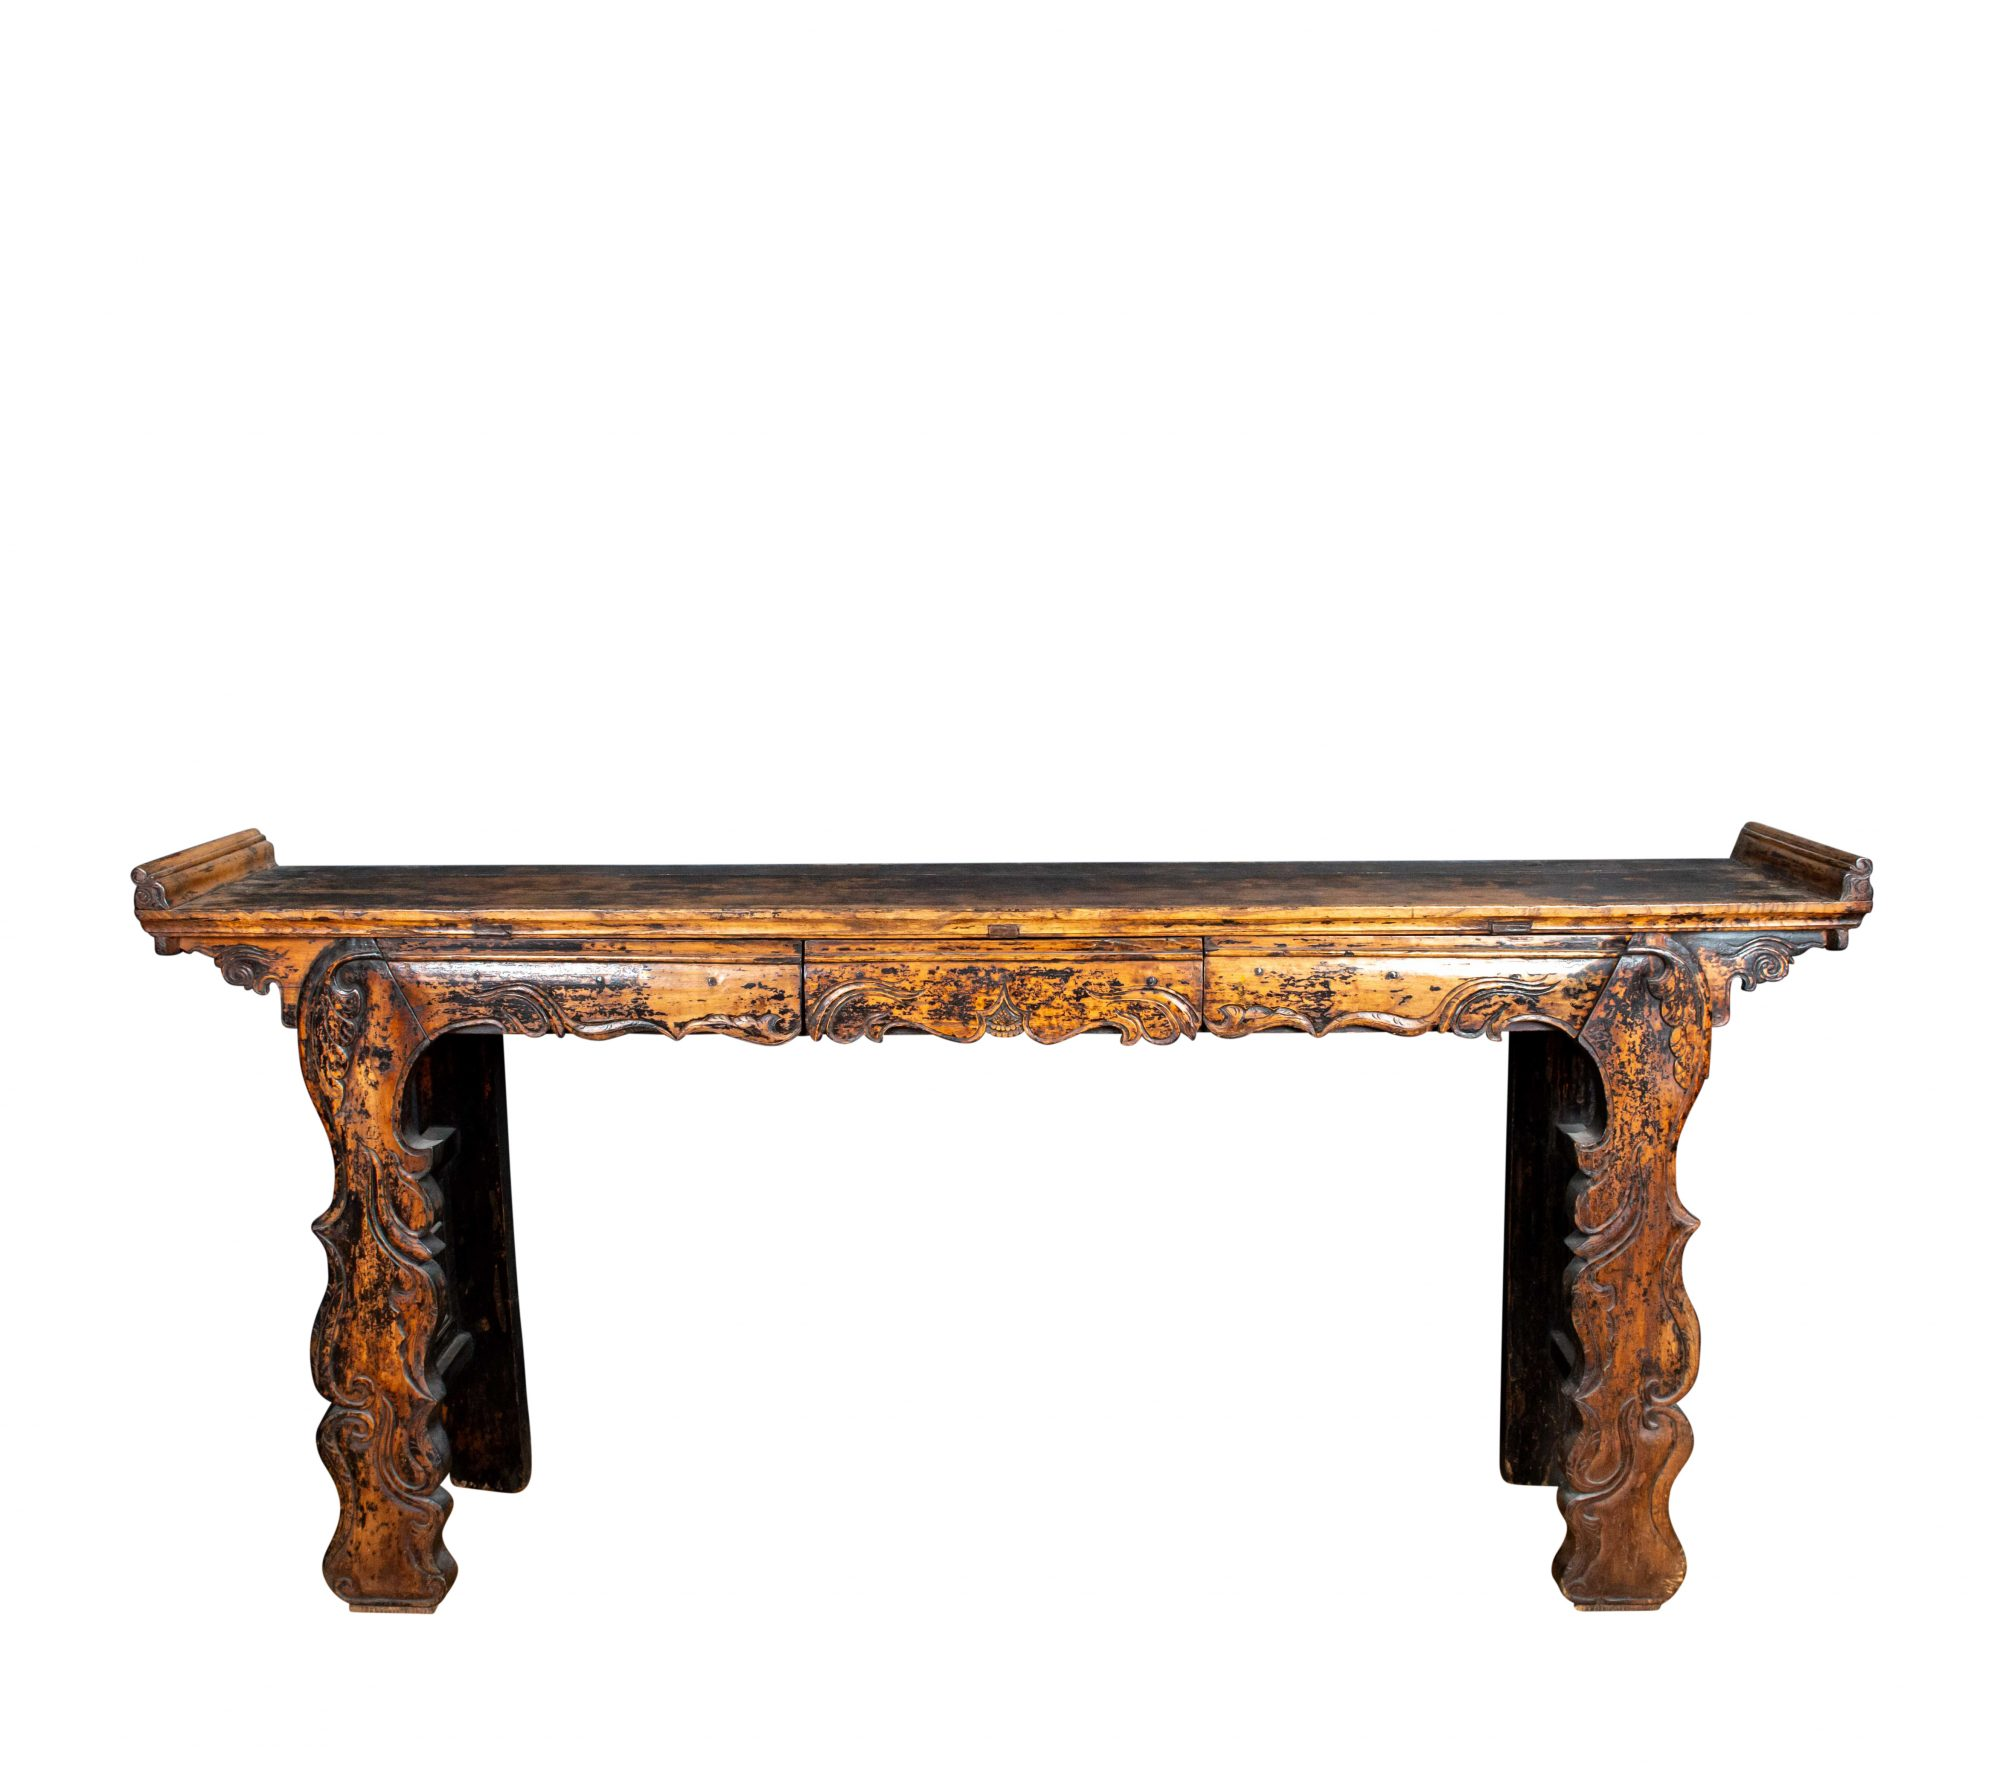 QING DYNASTY NORTHERN CHINESE ALTAR TABLE, SHANXI PROVINCE